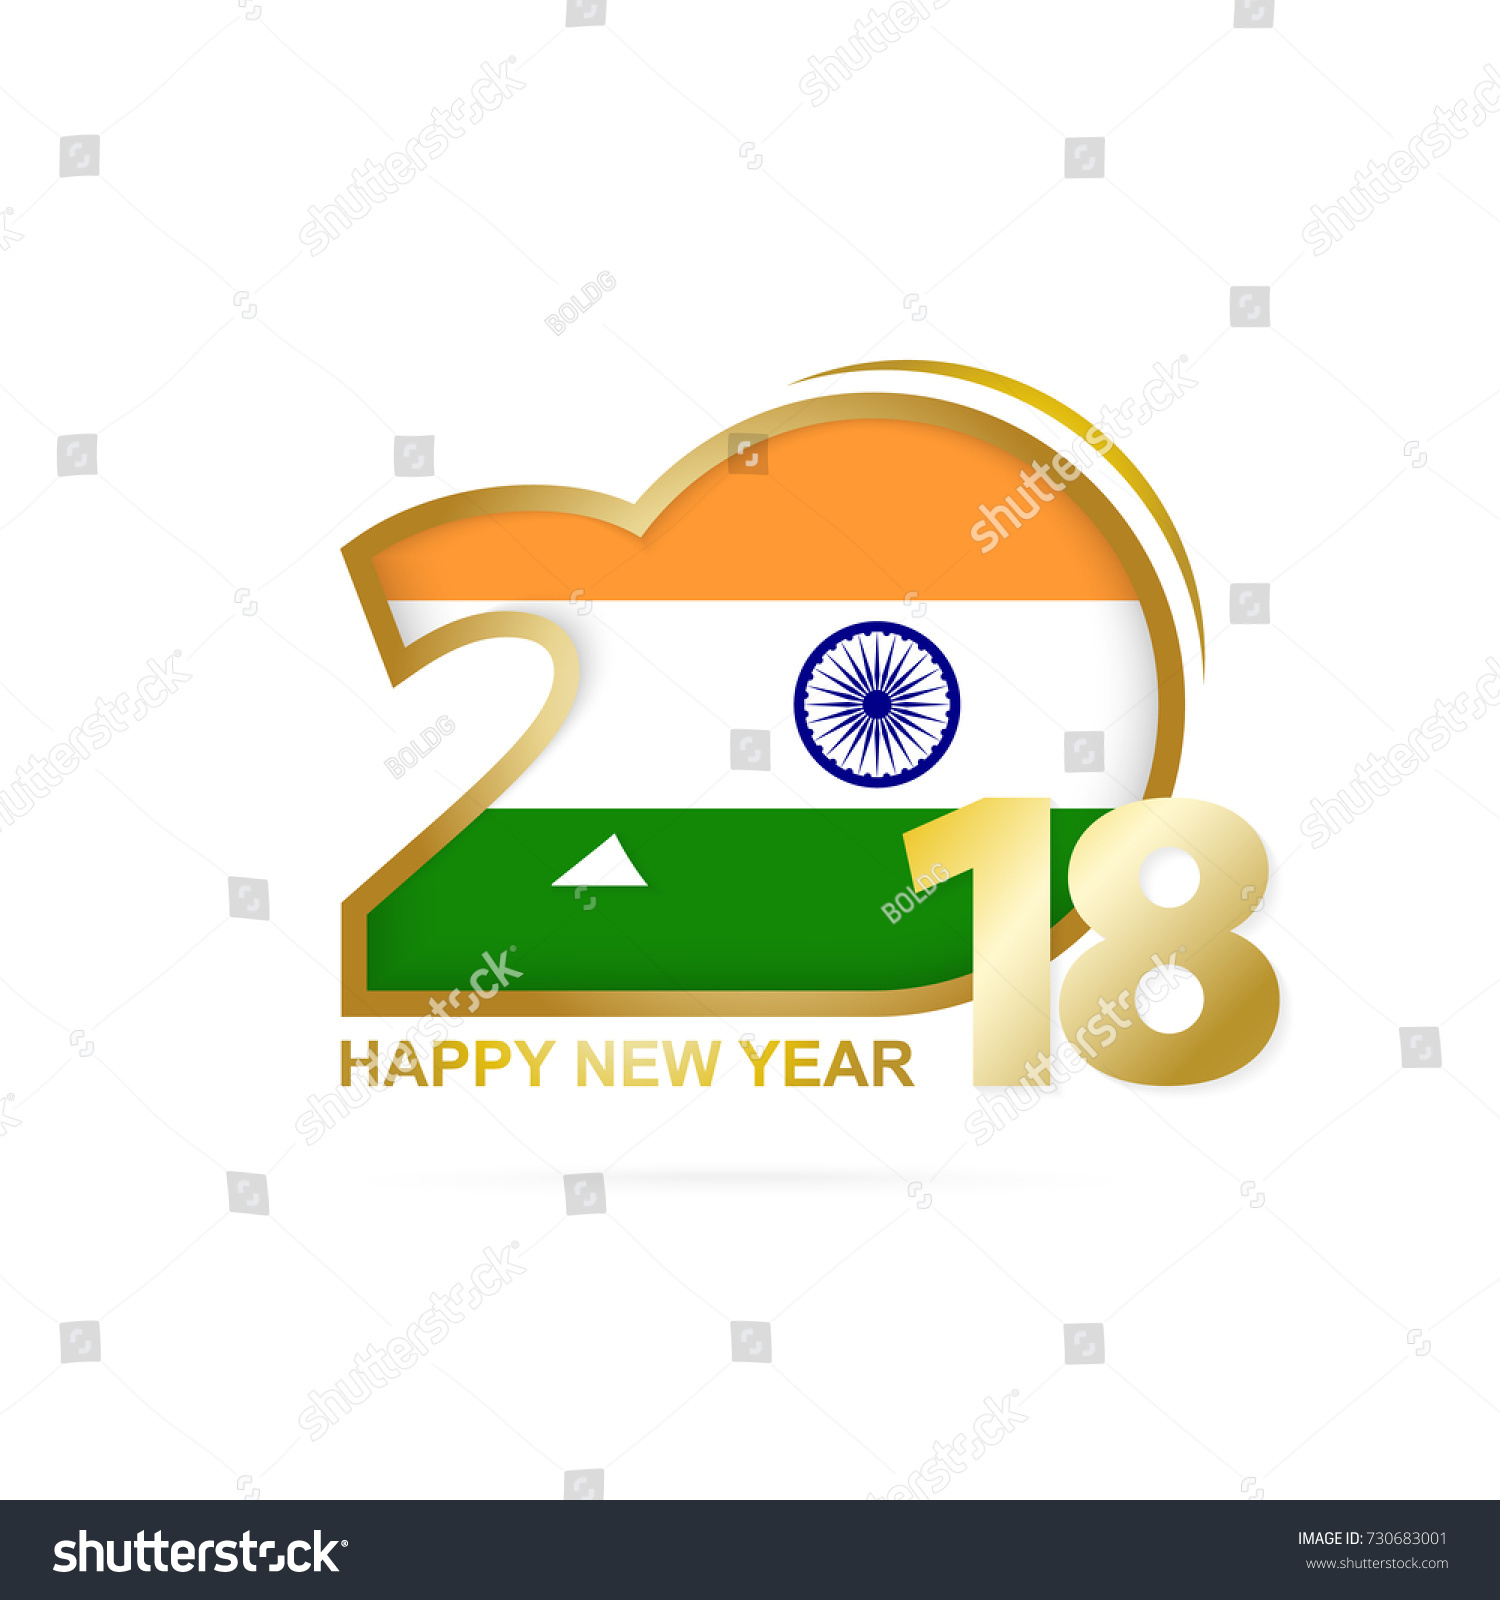 year 2018 with india flag pattern happy new year design vector illustration